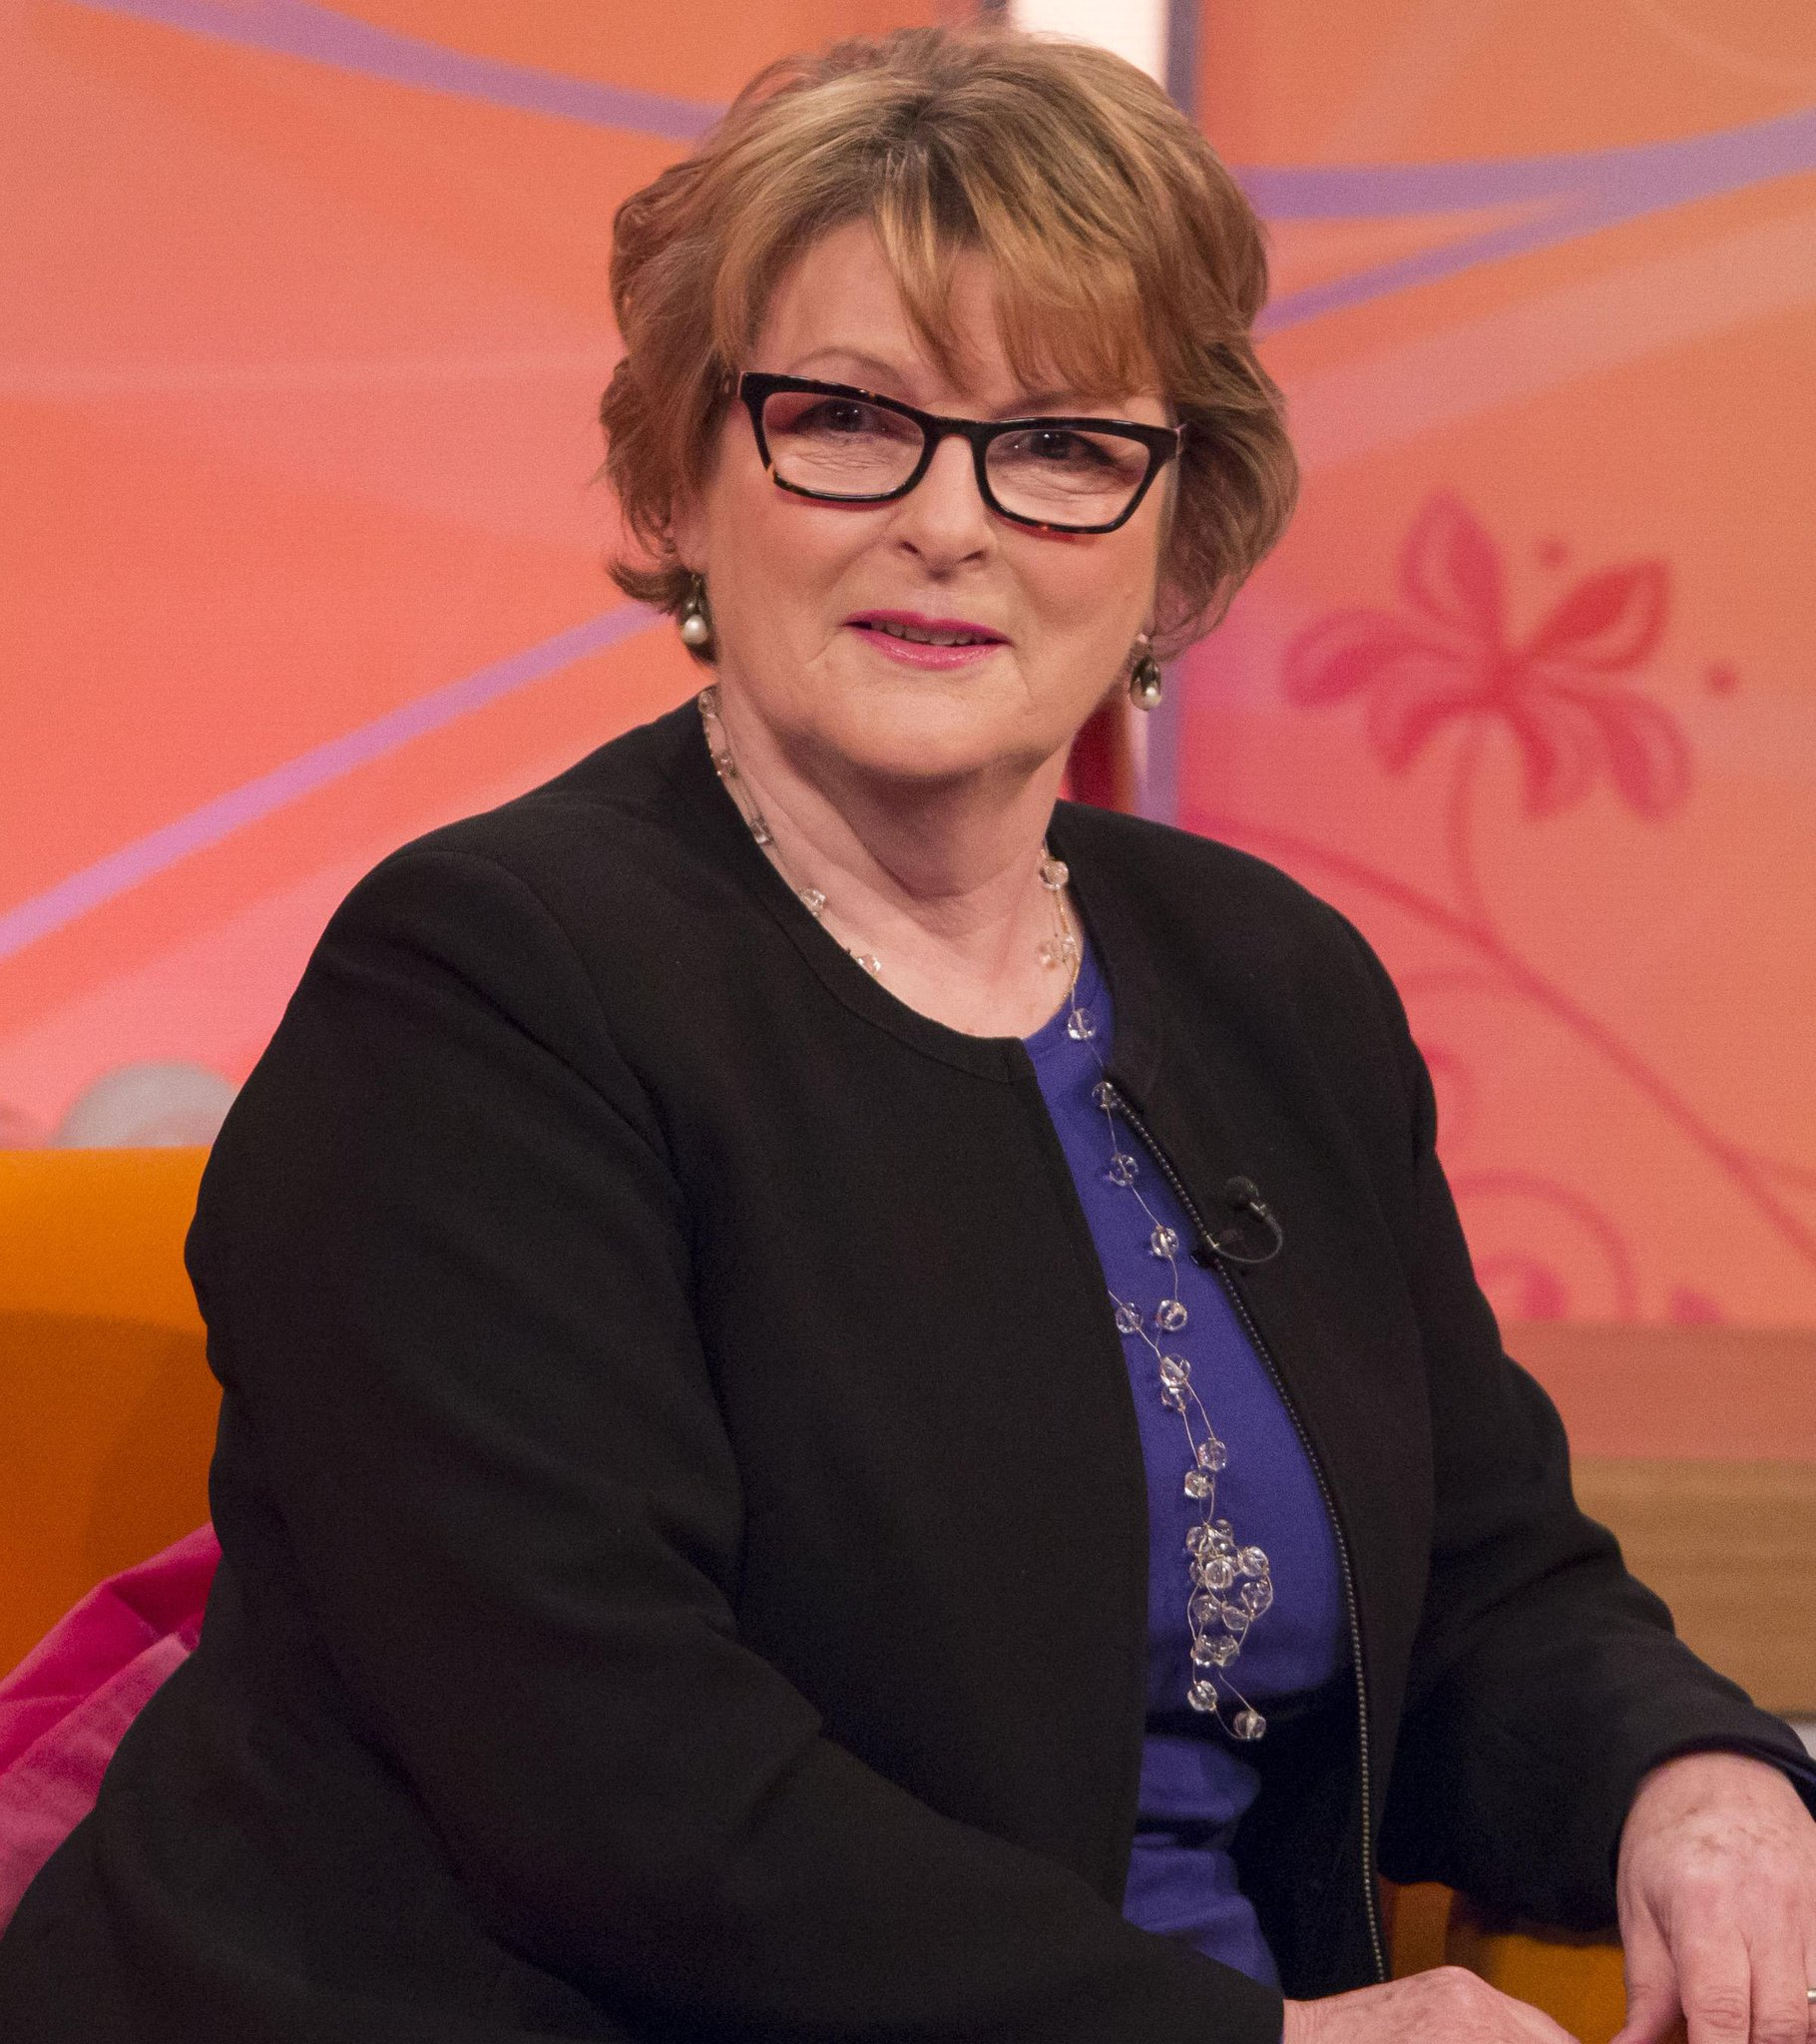 RT @MelandSue: Don't miss #MelandSue at 4 with Oscar nominated actress Brenda Blethyn & the fab @sally_lindsay talking #OrdinaryLies http:/…